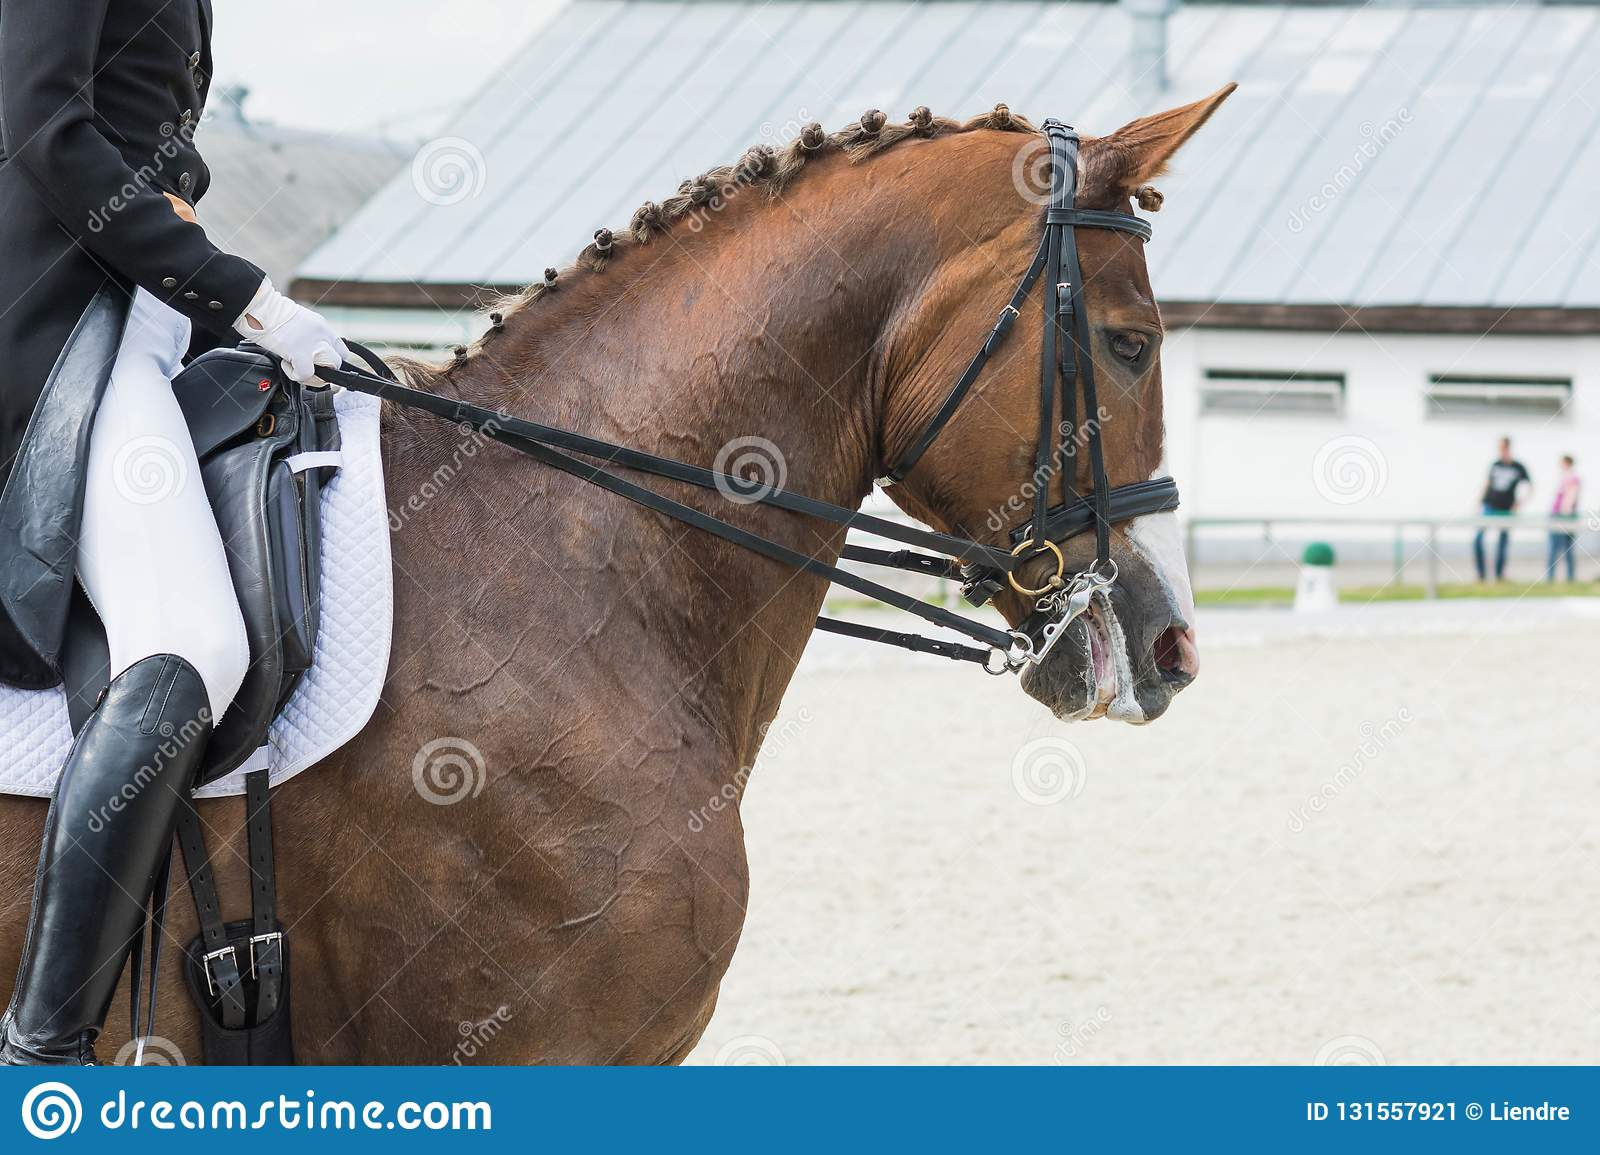 Dressage Rider On A Brown Horse View From The Side Stock Image Image Of Number Breeches 131557921